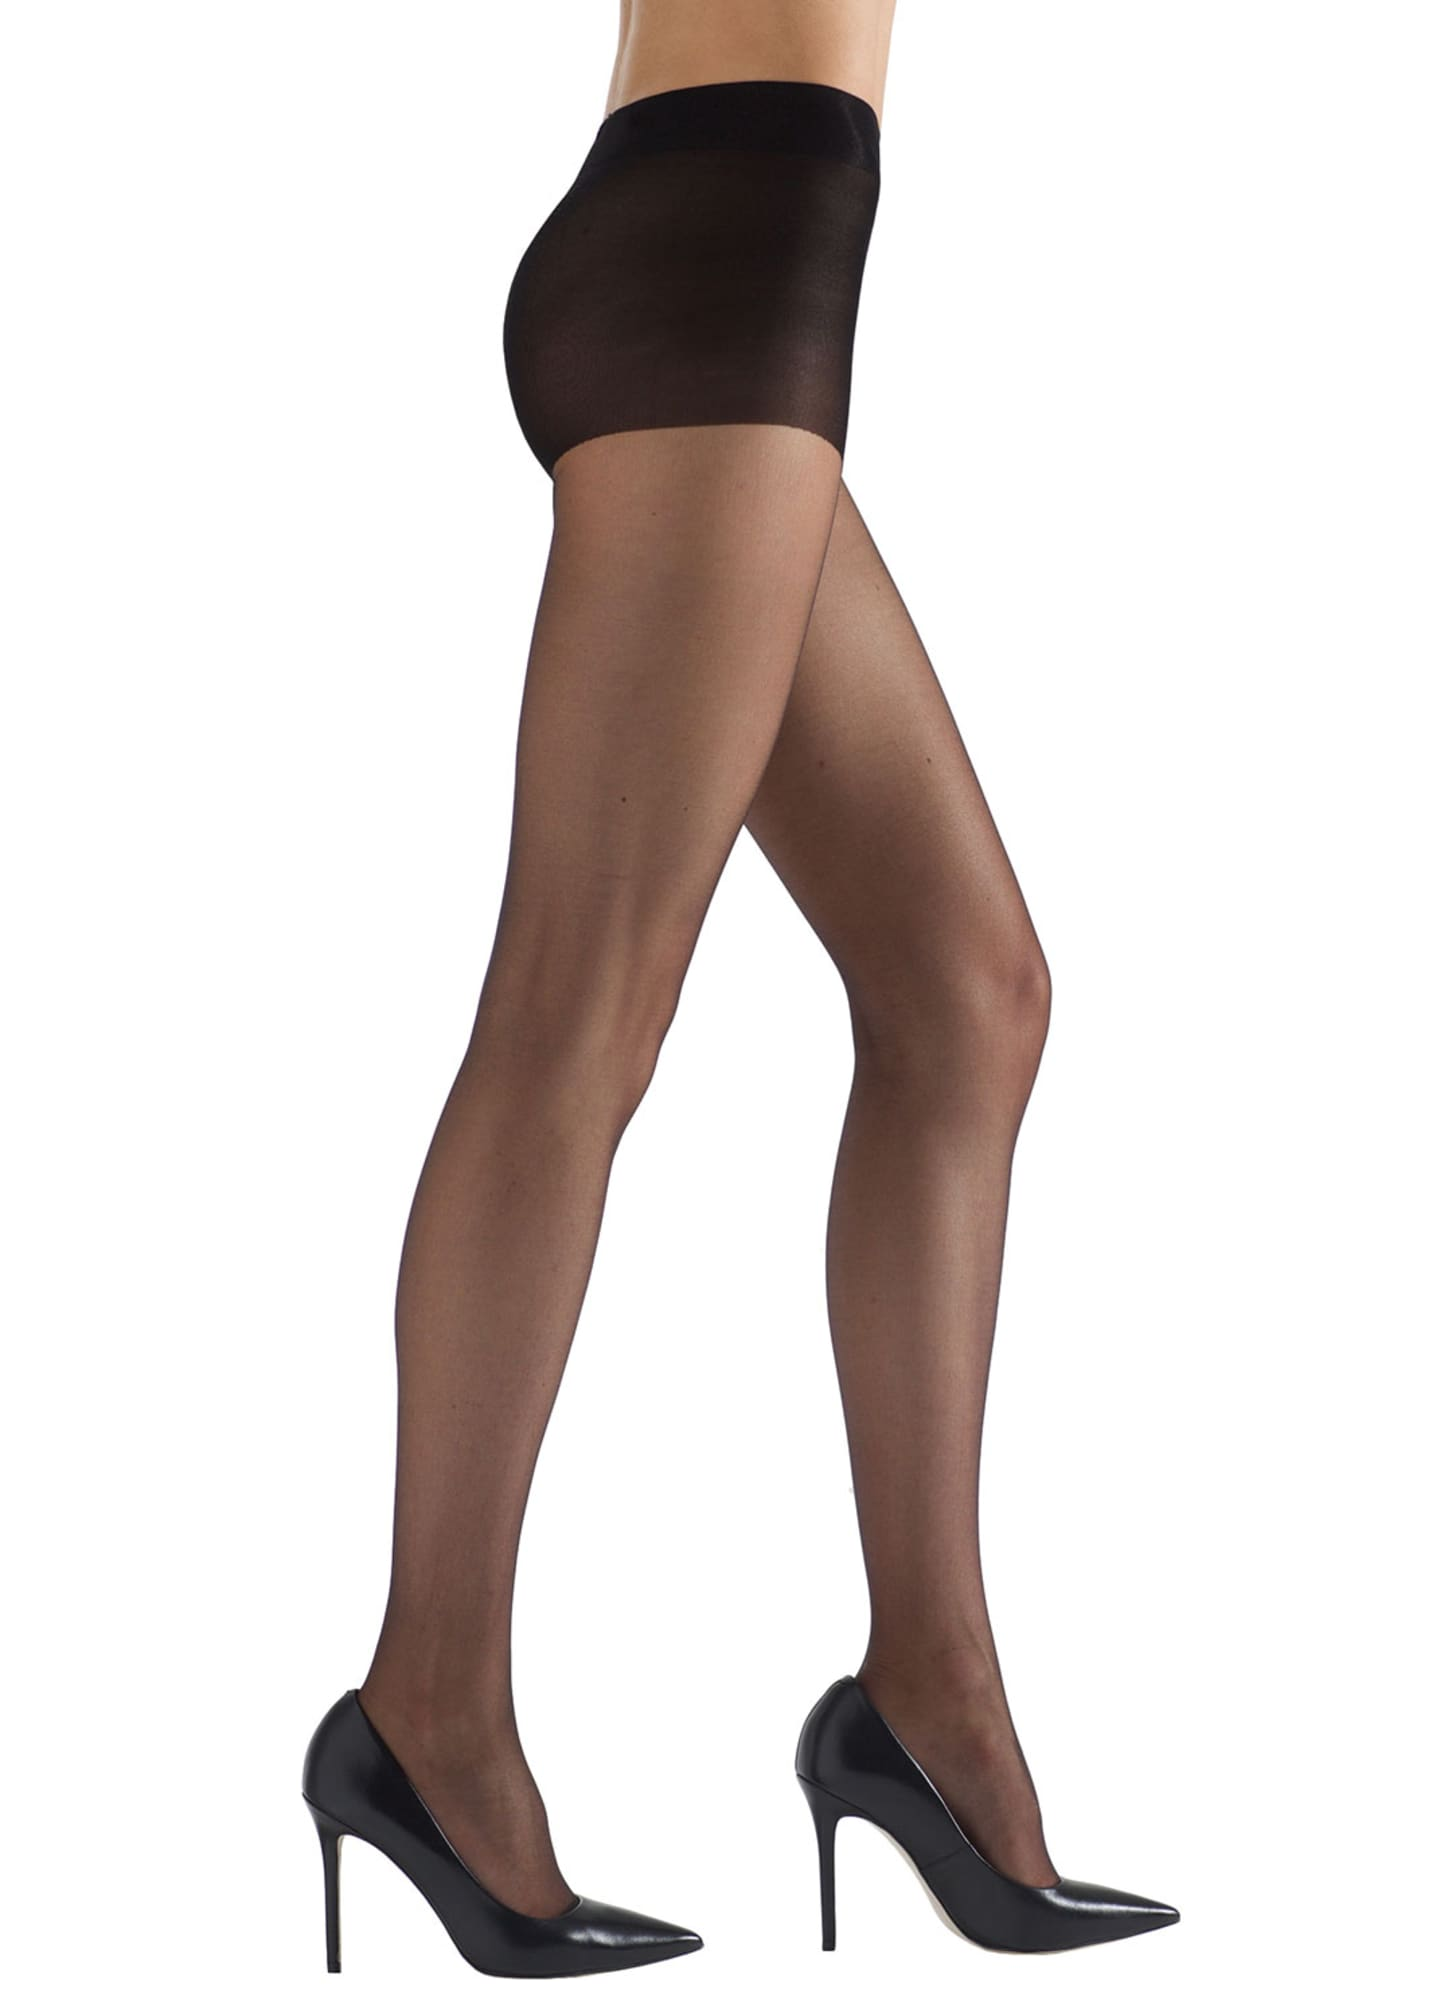 Natori 2-Pack Ultra Bare Sheer Control Top Tights